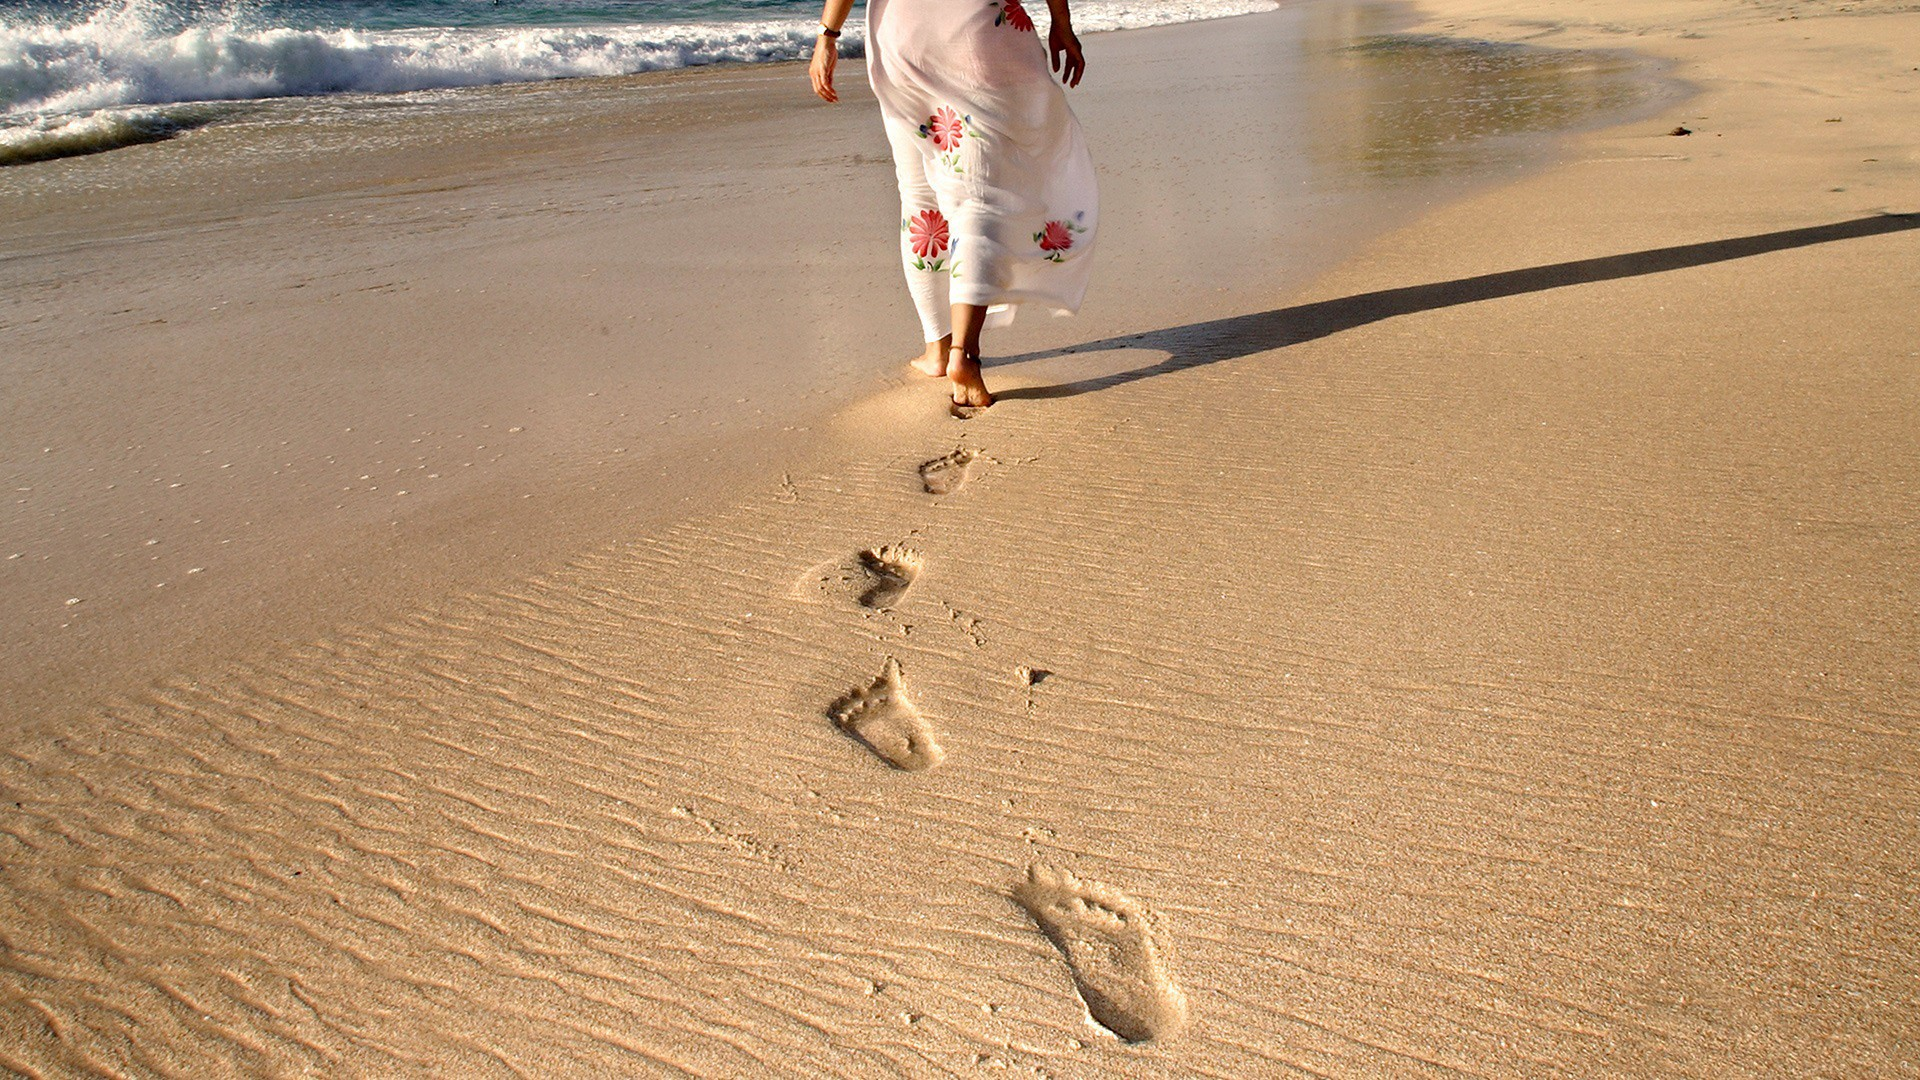 Creative_Wallpaper_Traces_of_bare_feet_in_the_sand_beach_097930_